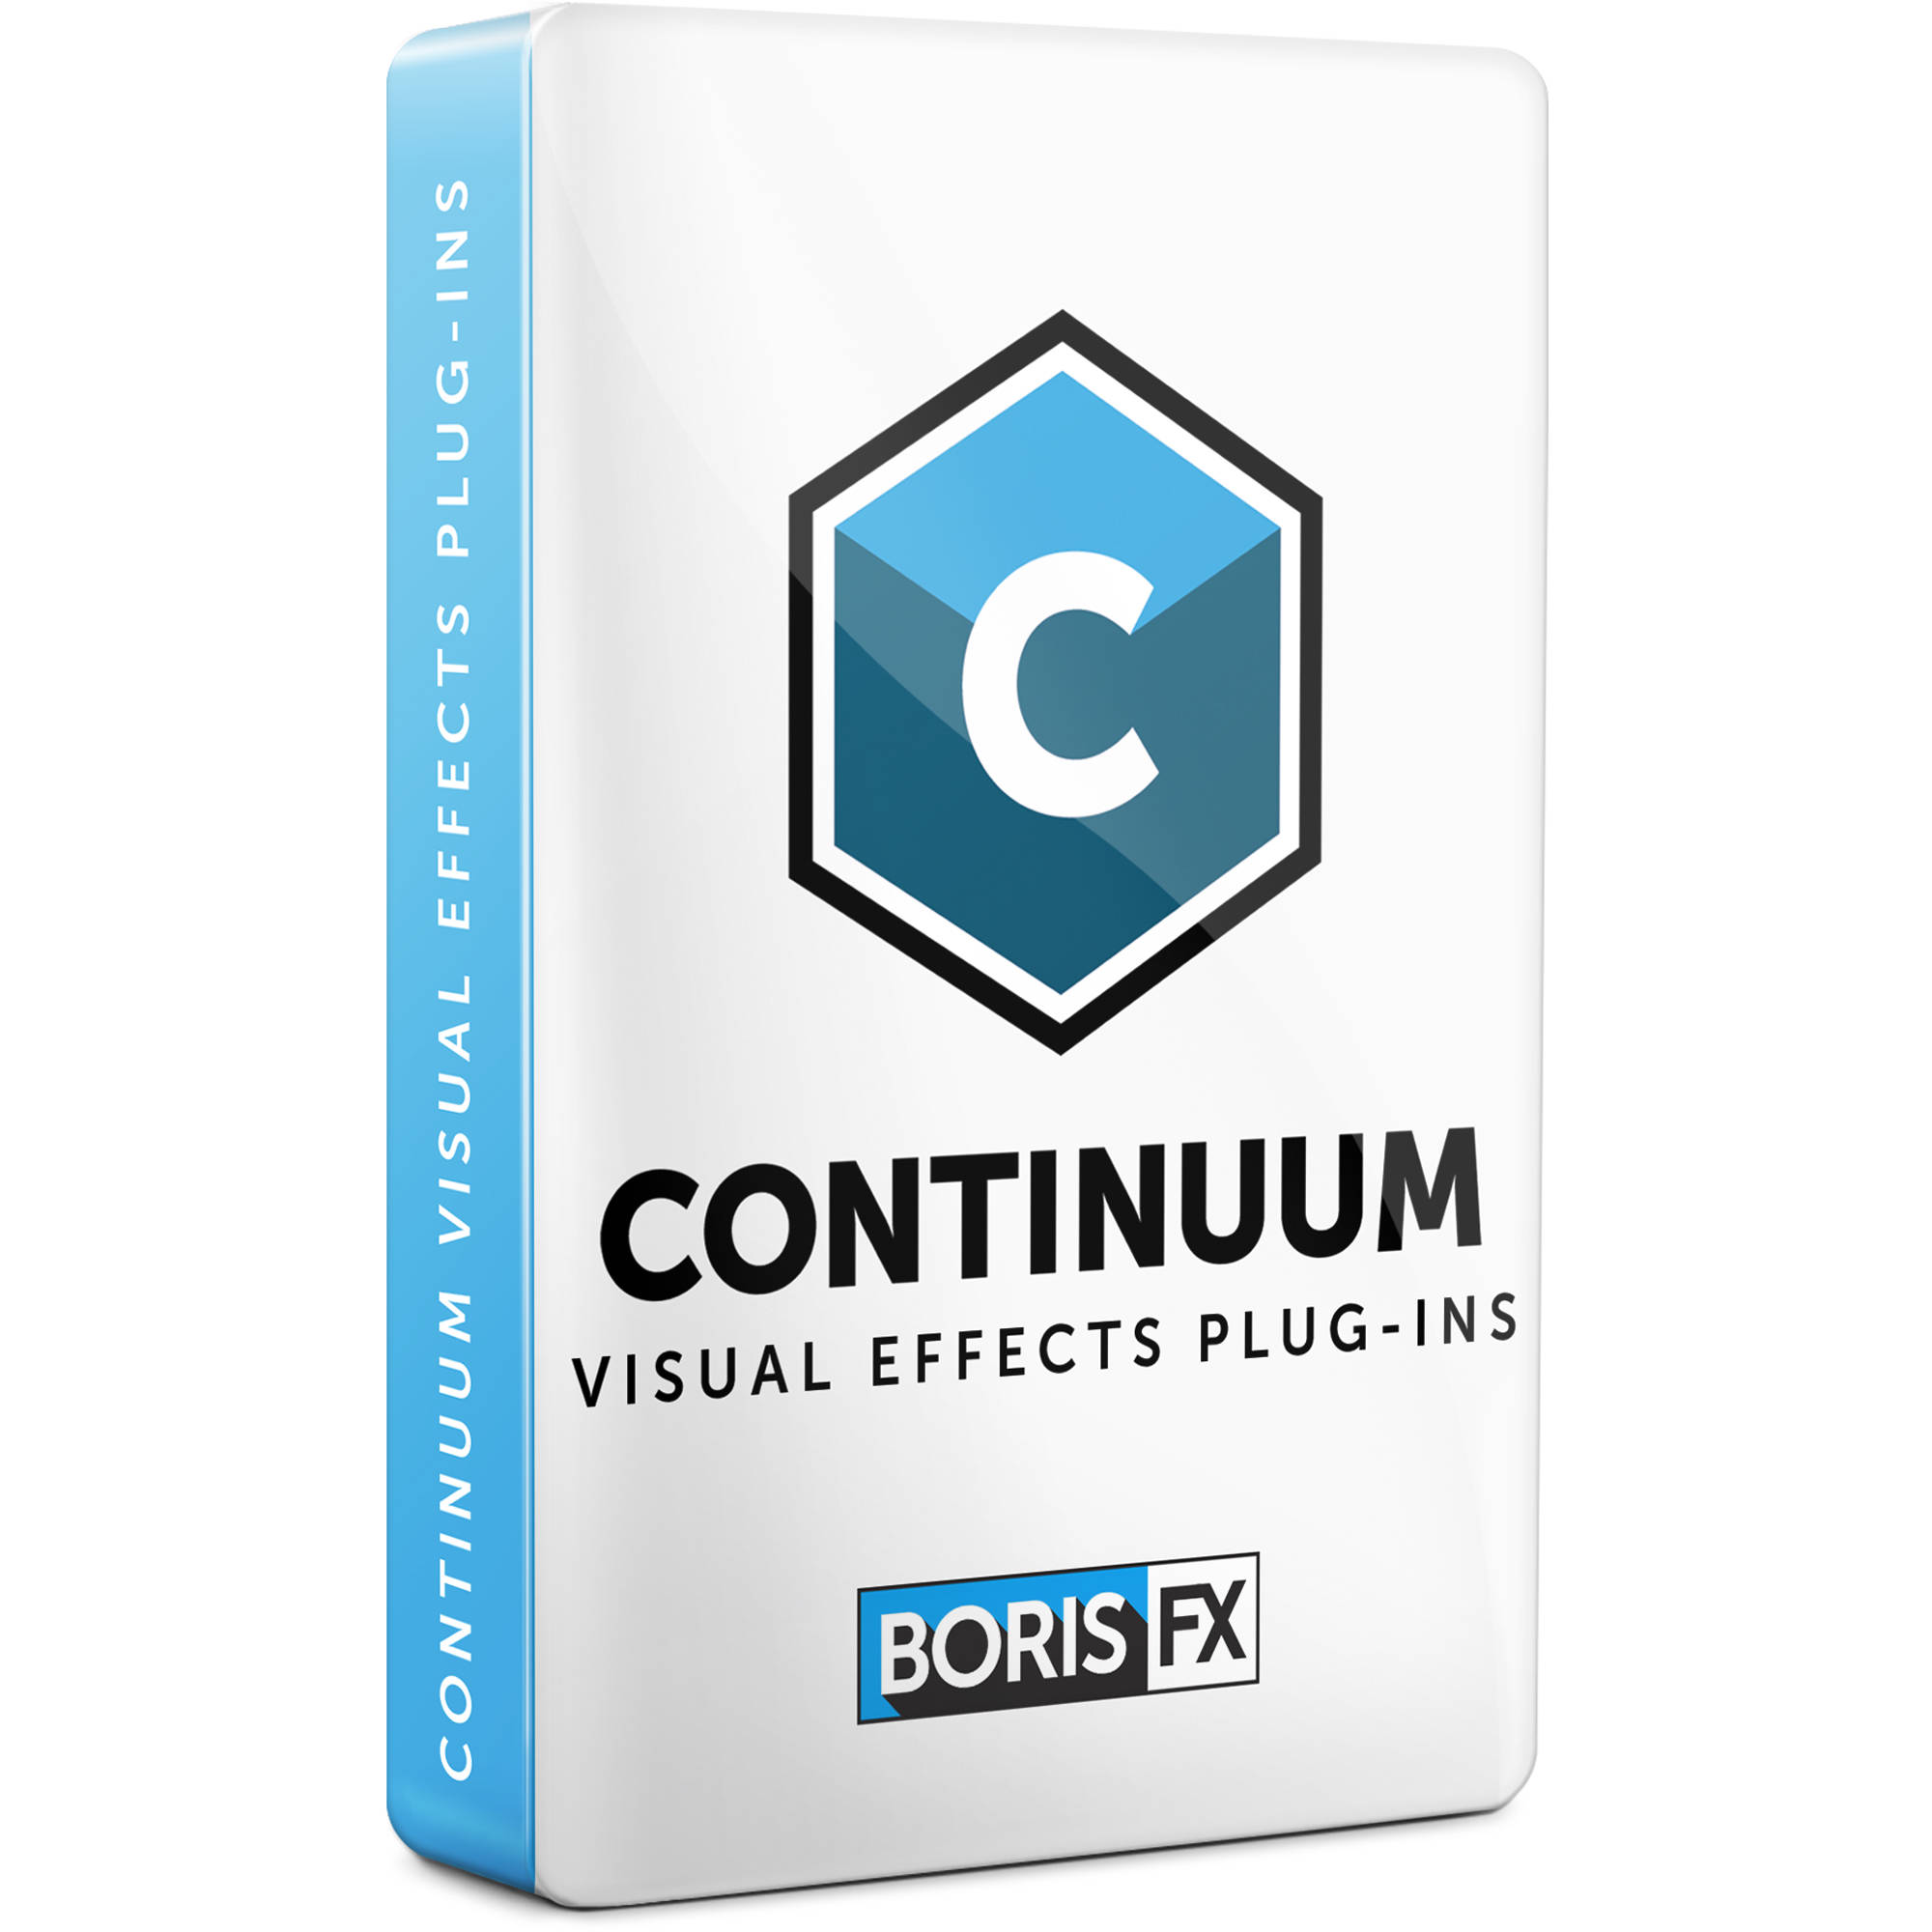 Boris FX Continuum 11 for Apple BCCFXPLUG1100 B&H Photo Video